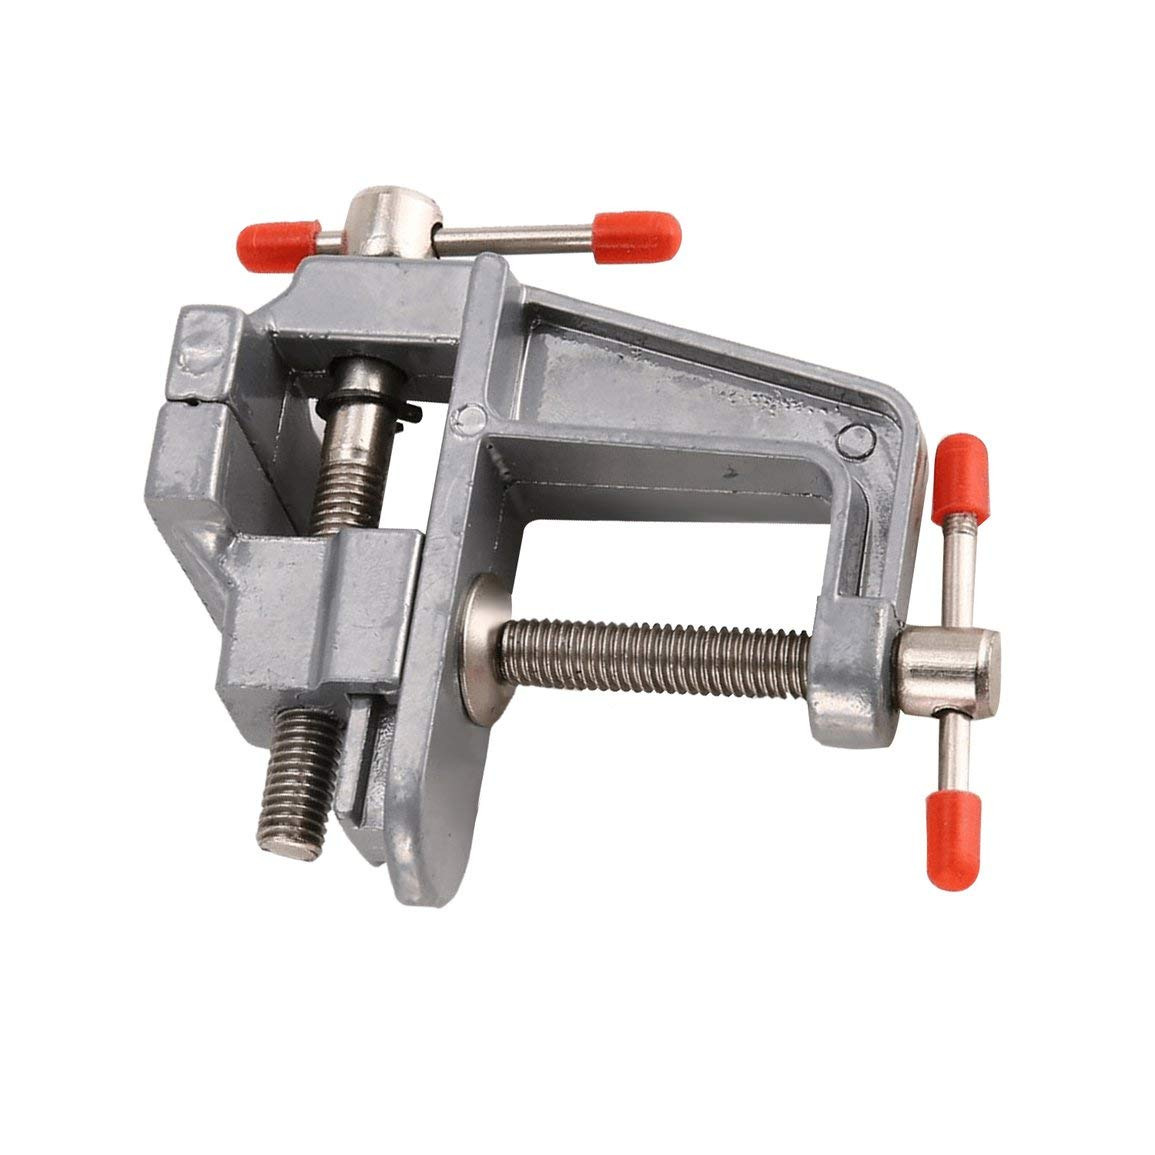 Diy Table Vice Miniature Vise Small Jewelers Hobby Clamp On Bench